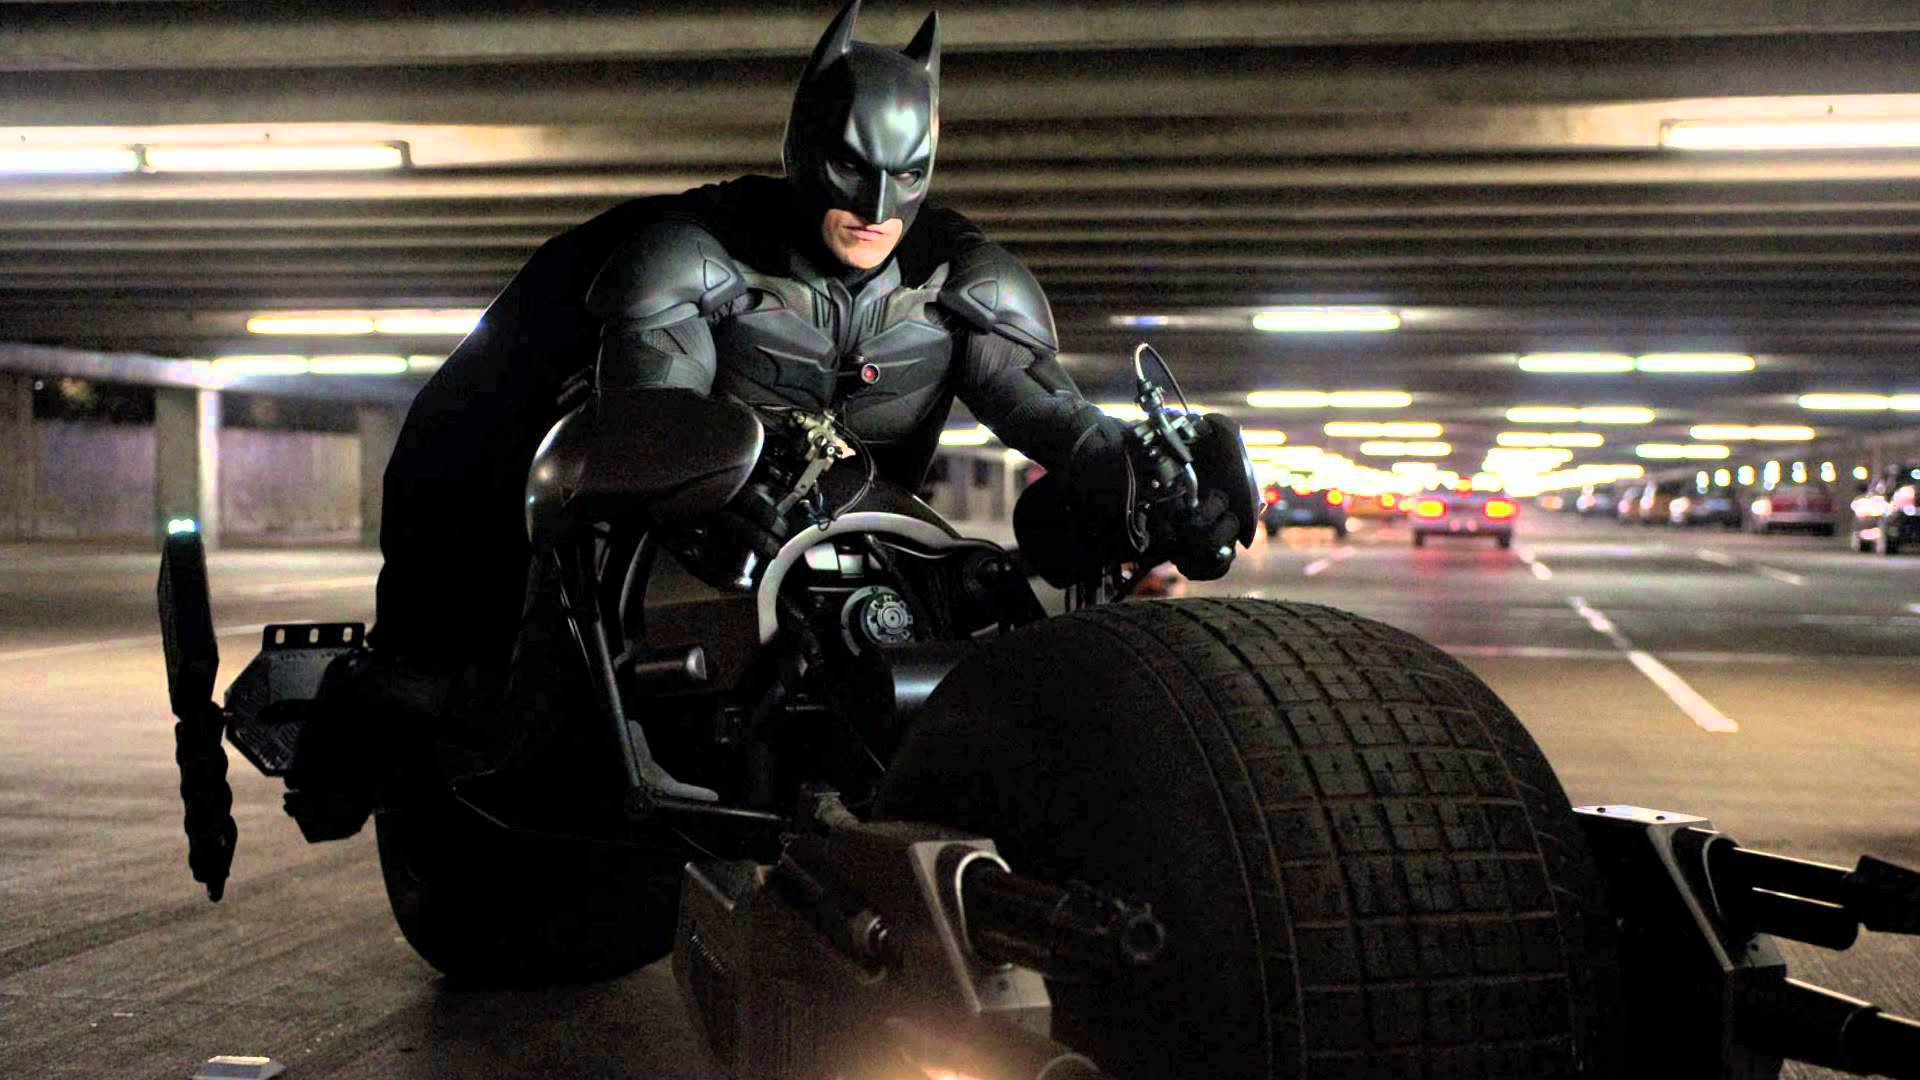 batman-batpod-the-dark-knight